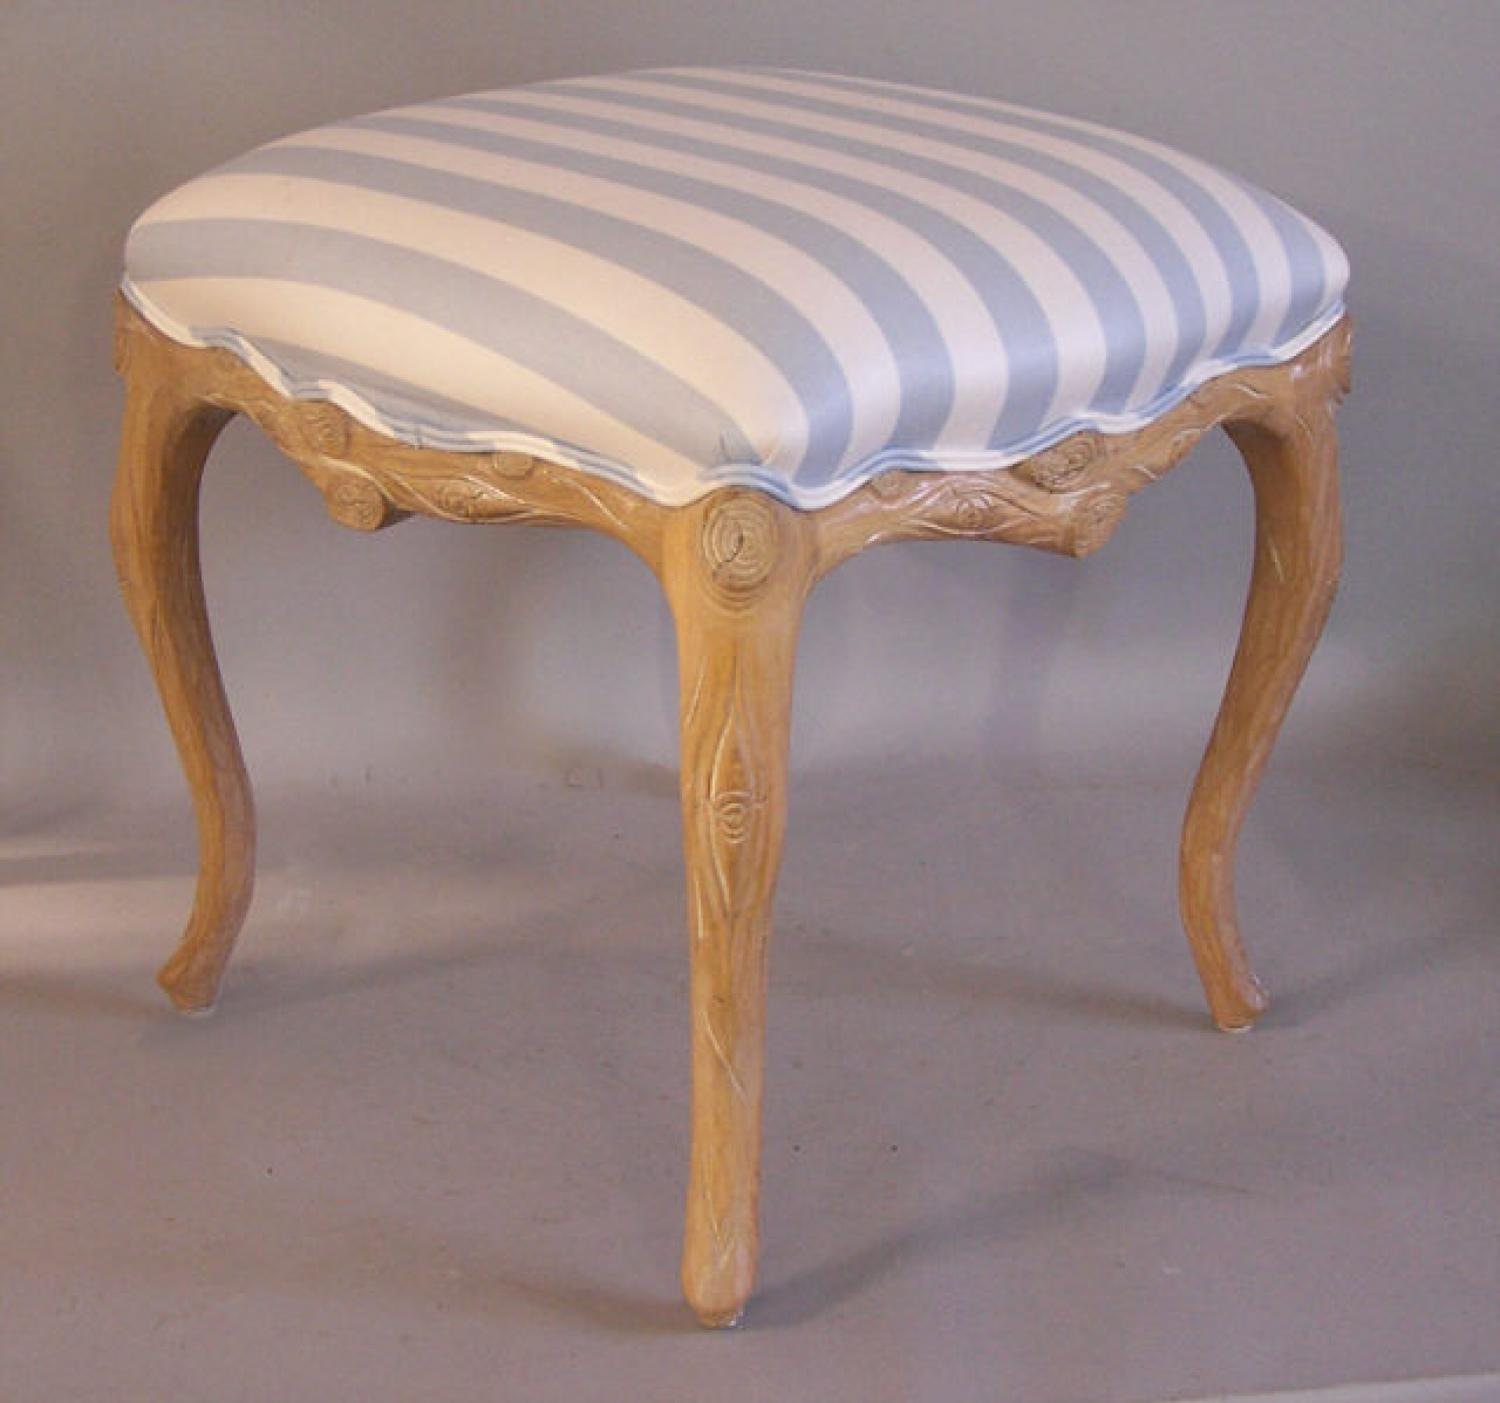 Square hand carved wood bench blue stripe upholstery from Wicker Works